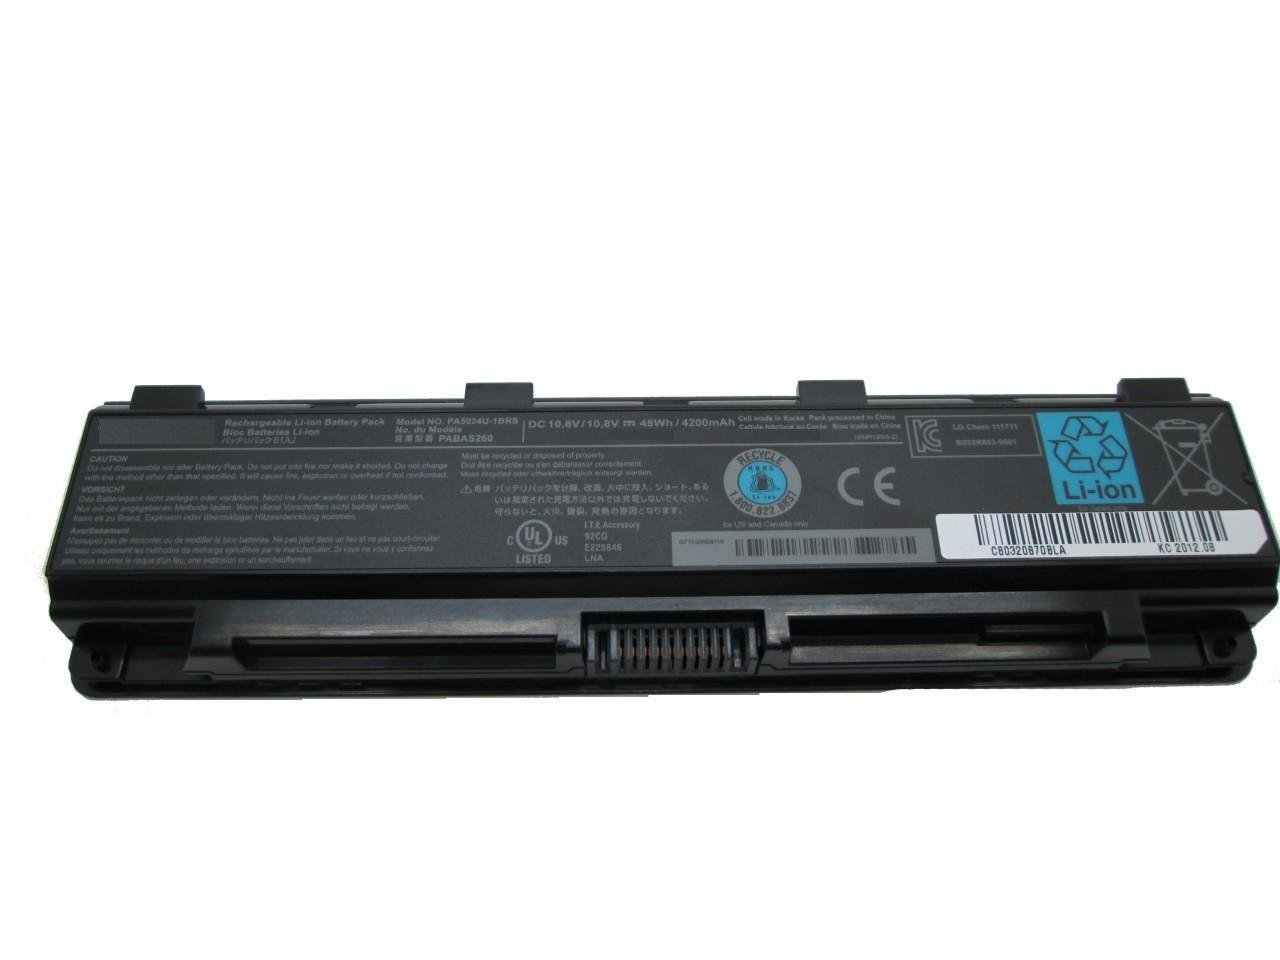 Toshiba satellite L870 L870D L875 L875D S70 S75 S75D compatible laptop battery